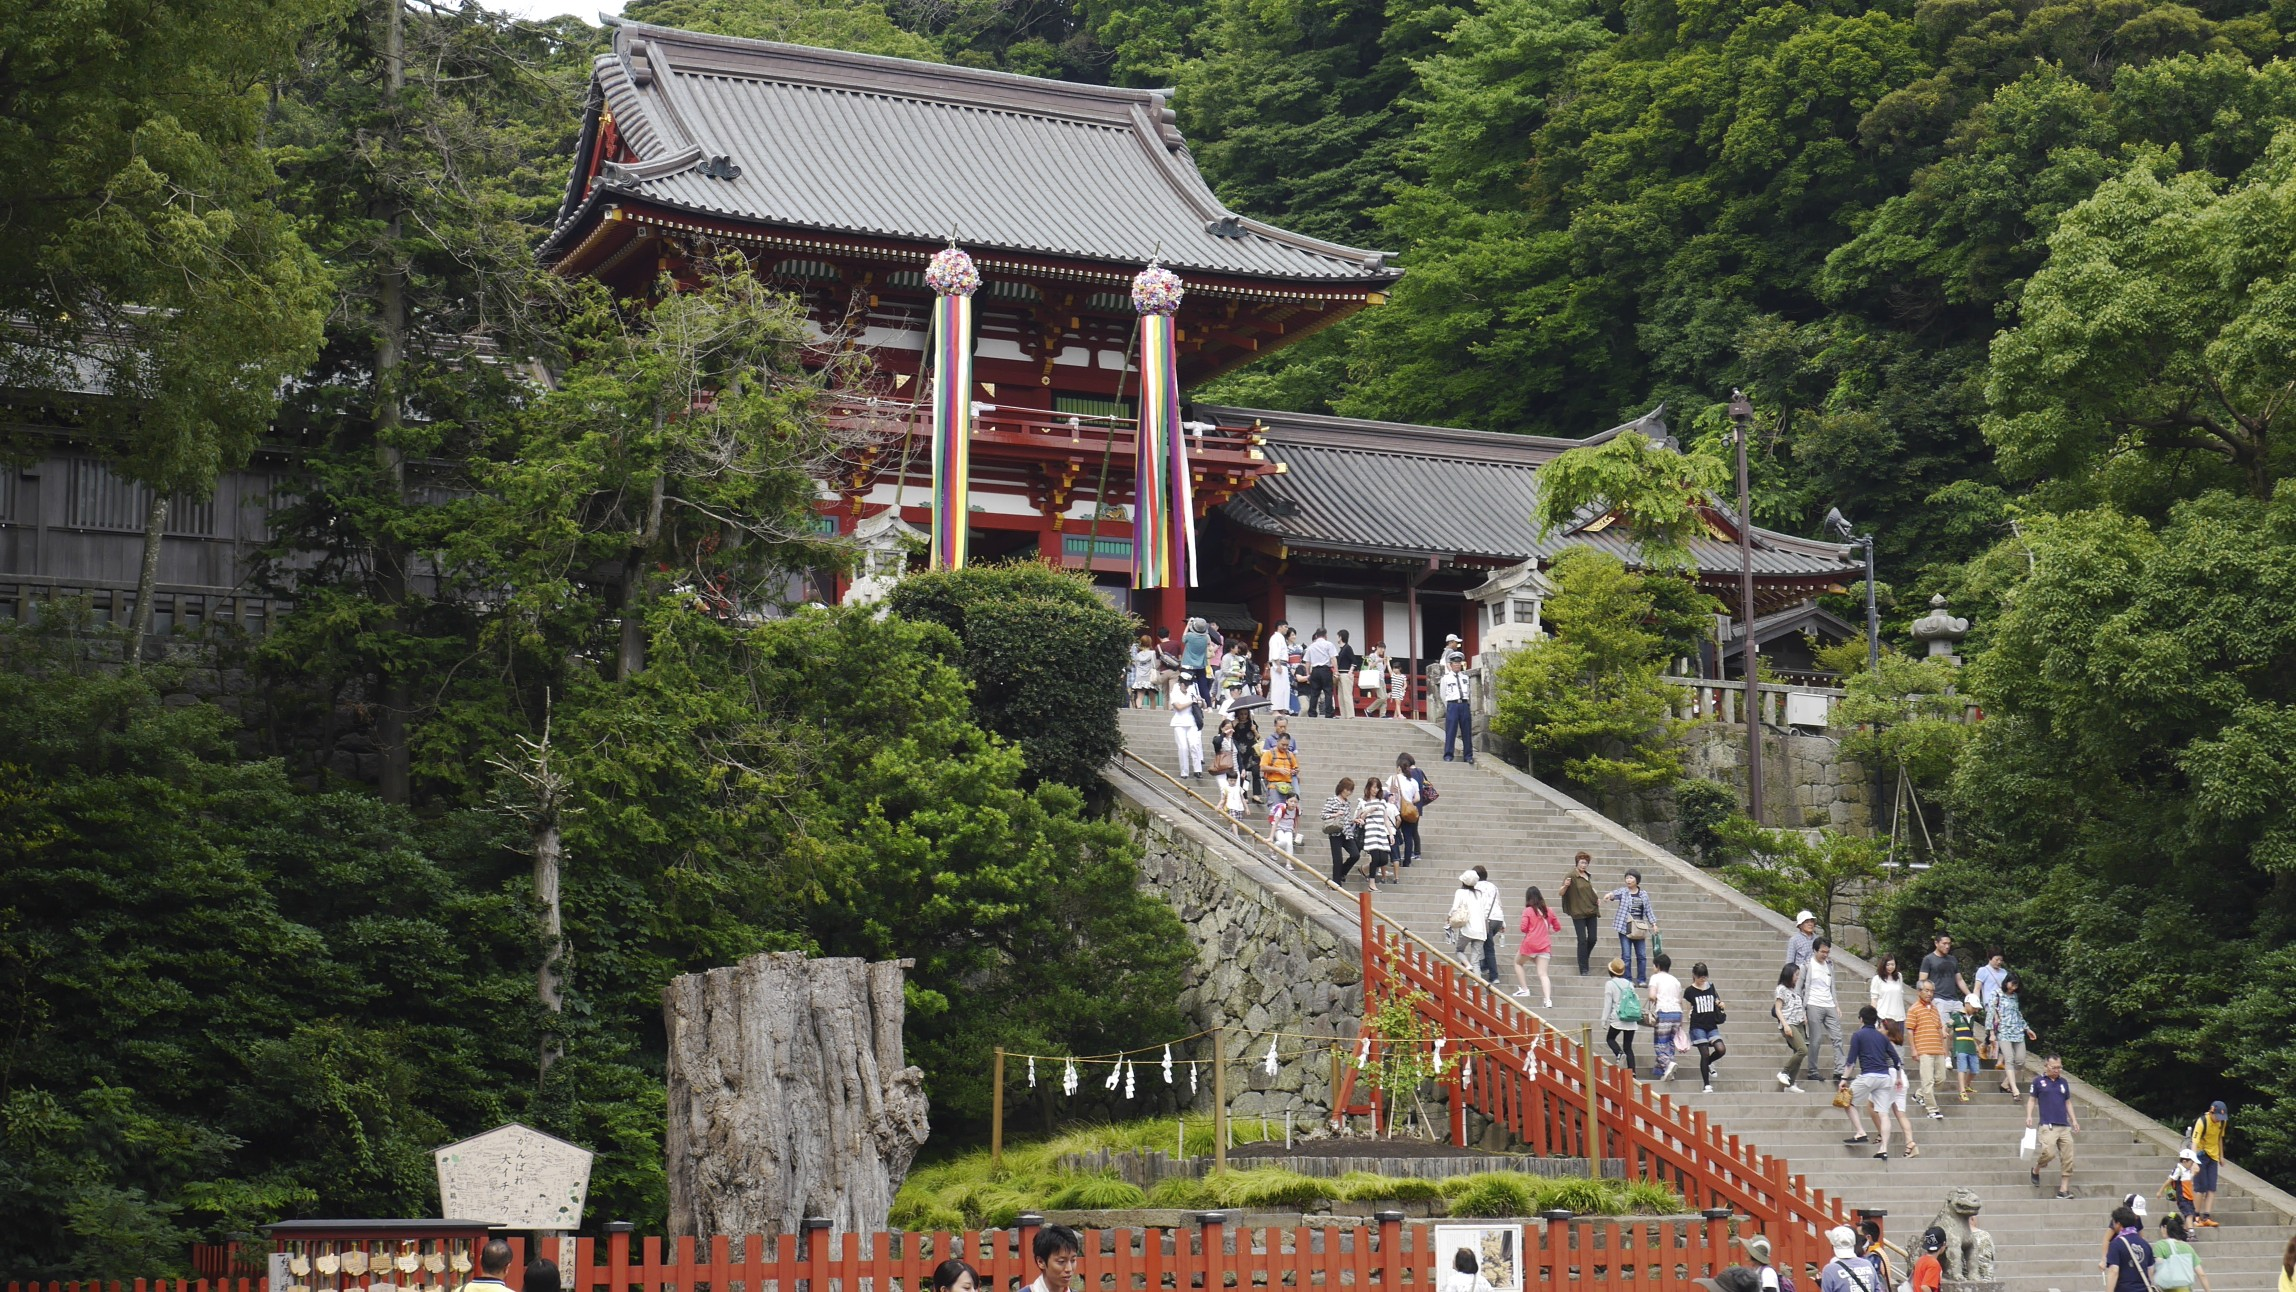 Tsurugaoka Hachimangū  is the most important Shinto Shrine in the city of Kamakura, Kanagawa Prefecture, Japan. This shrine was originally built in 1063. Both the shrine and the city were built with Feng Shui in mind.